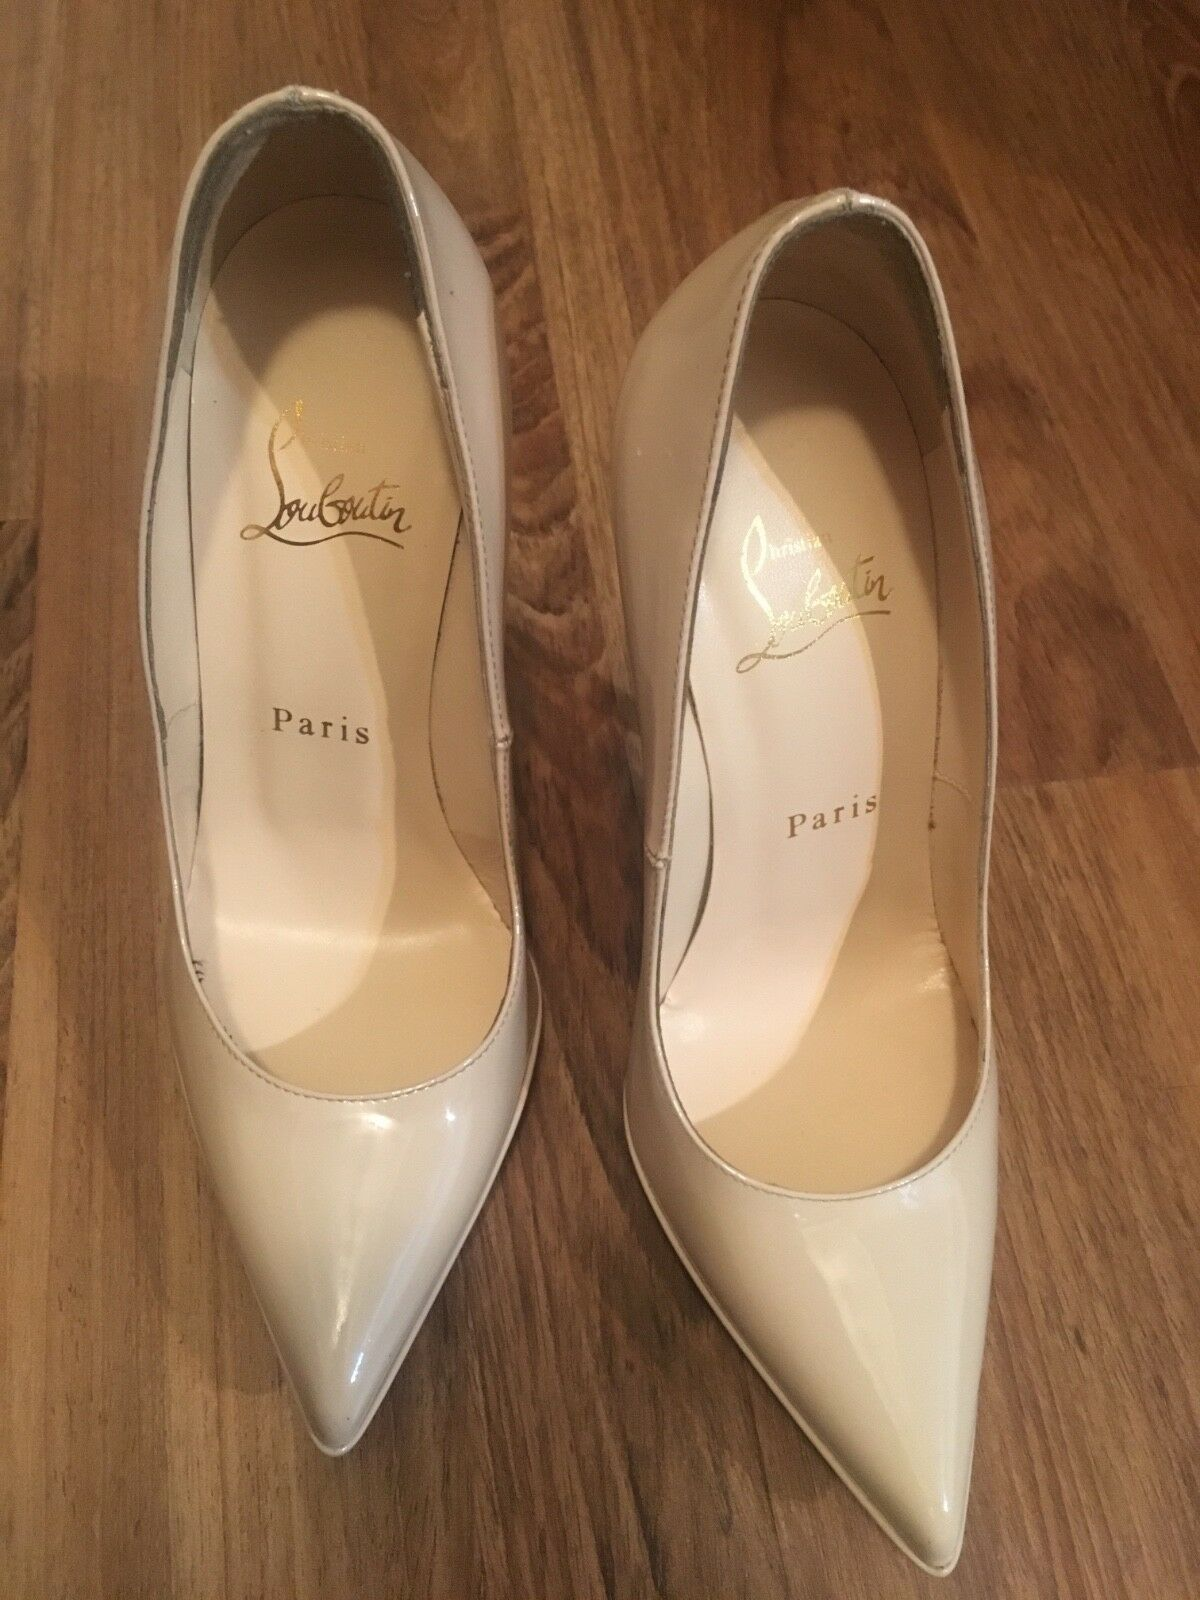 Christian louboutin 18 pump pigalle plato nude patent 36 1 2 original price  795